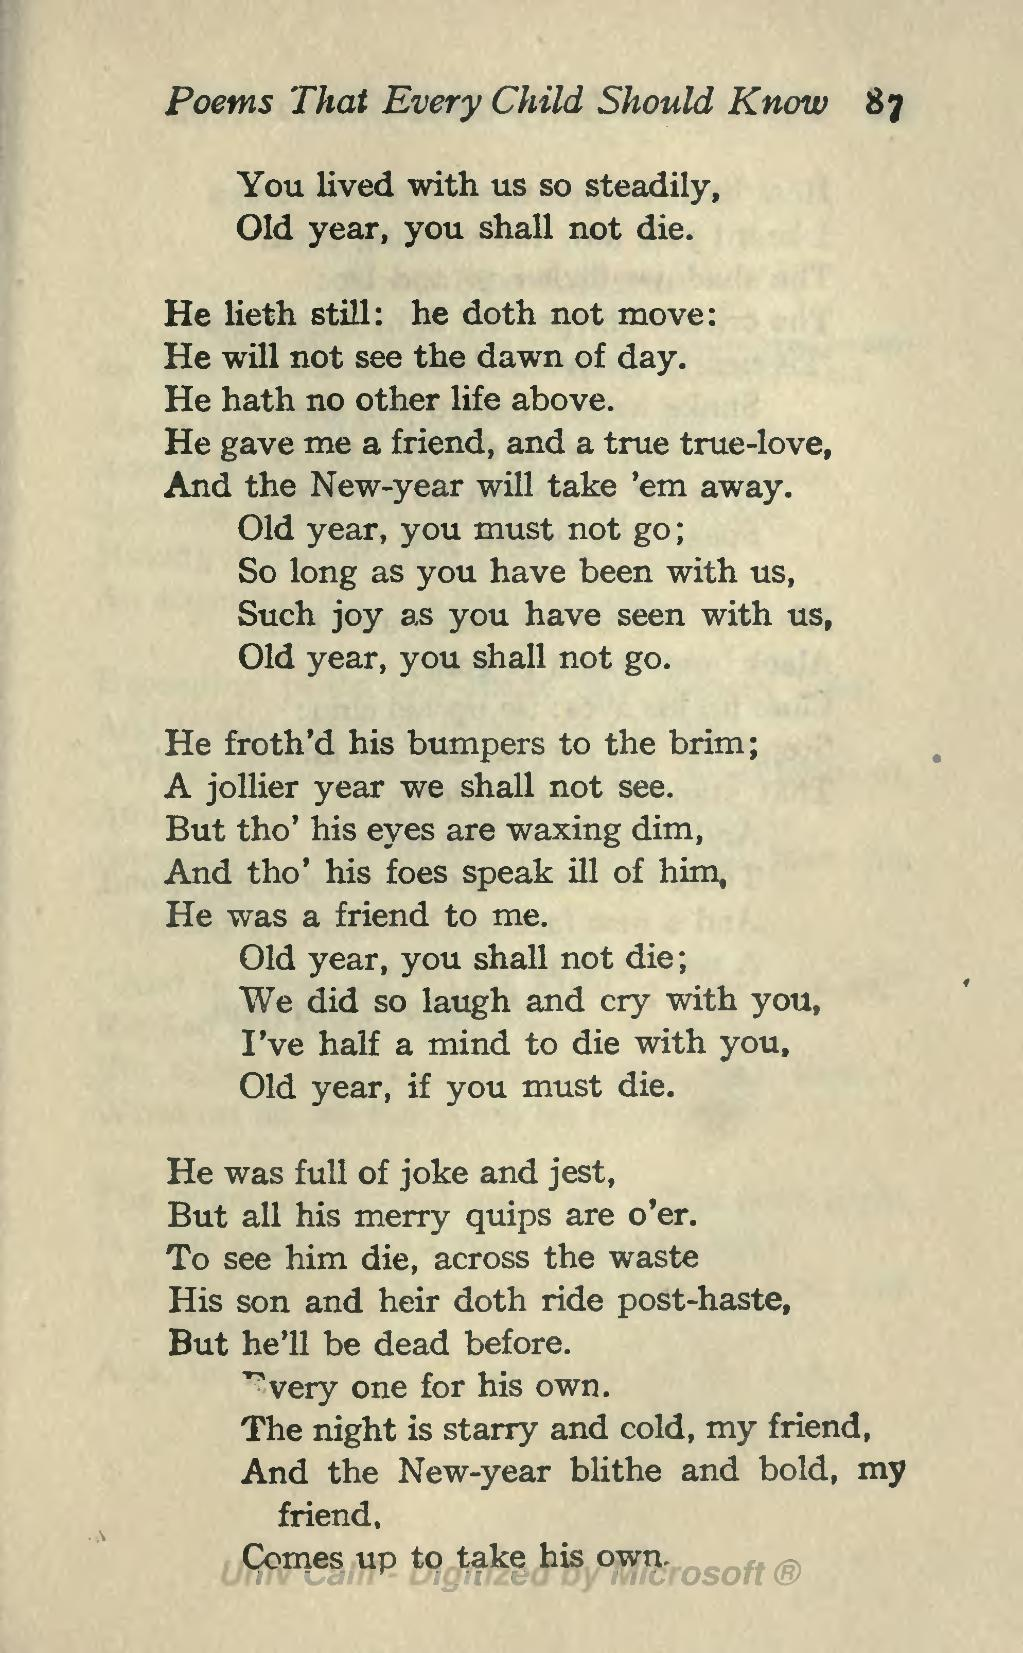 Pagepoems That Every Child Should Know Ed Burt 1904djvu125